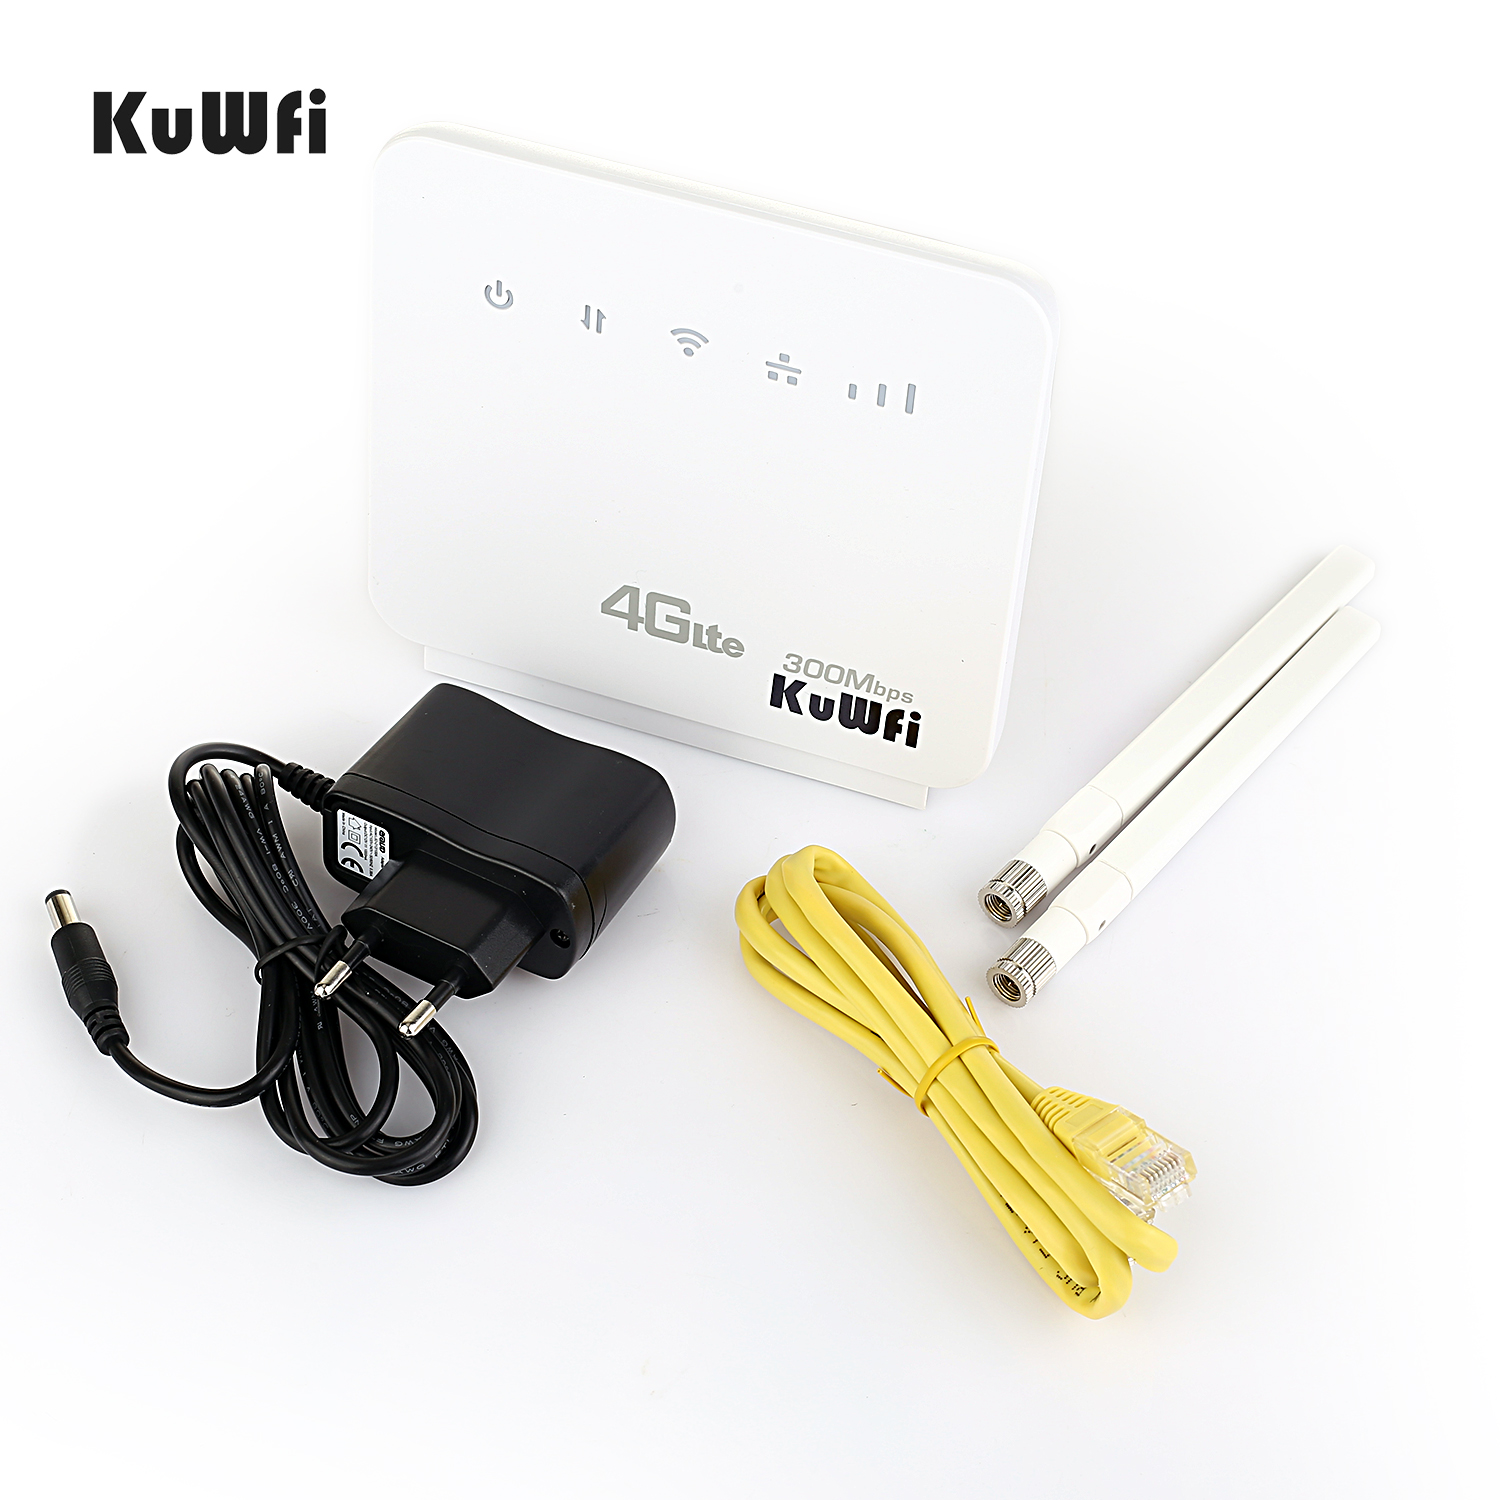 Unlocked 300Mbps Wifi Routers or 4G LTE CPE Mobile Router with LAN Port Support and SIM card 5